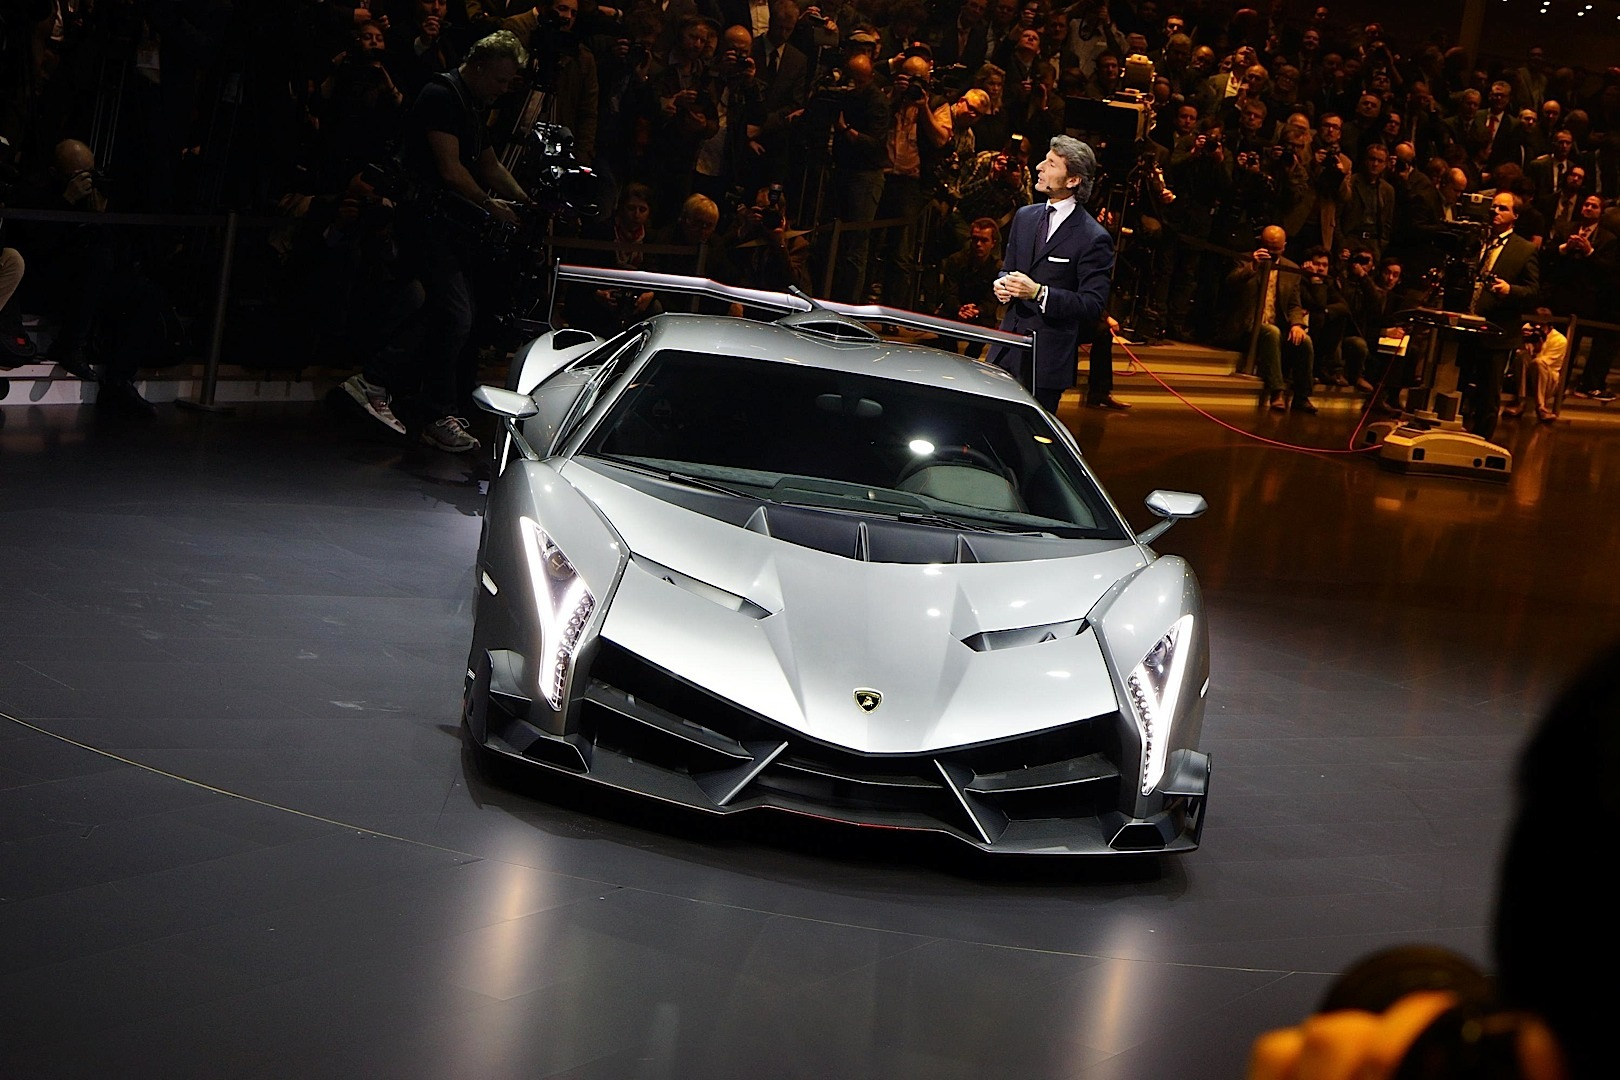 Ugly Car Wallpaper Lamborghini Veneno Named World S Ugliest Car Autoevolution